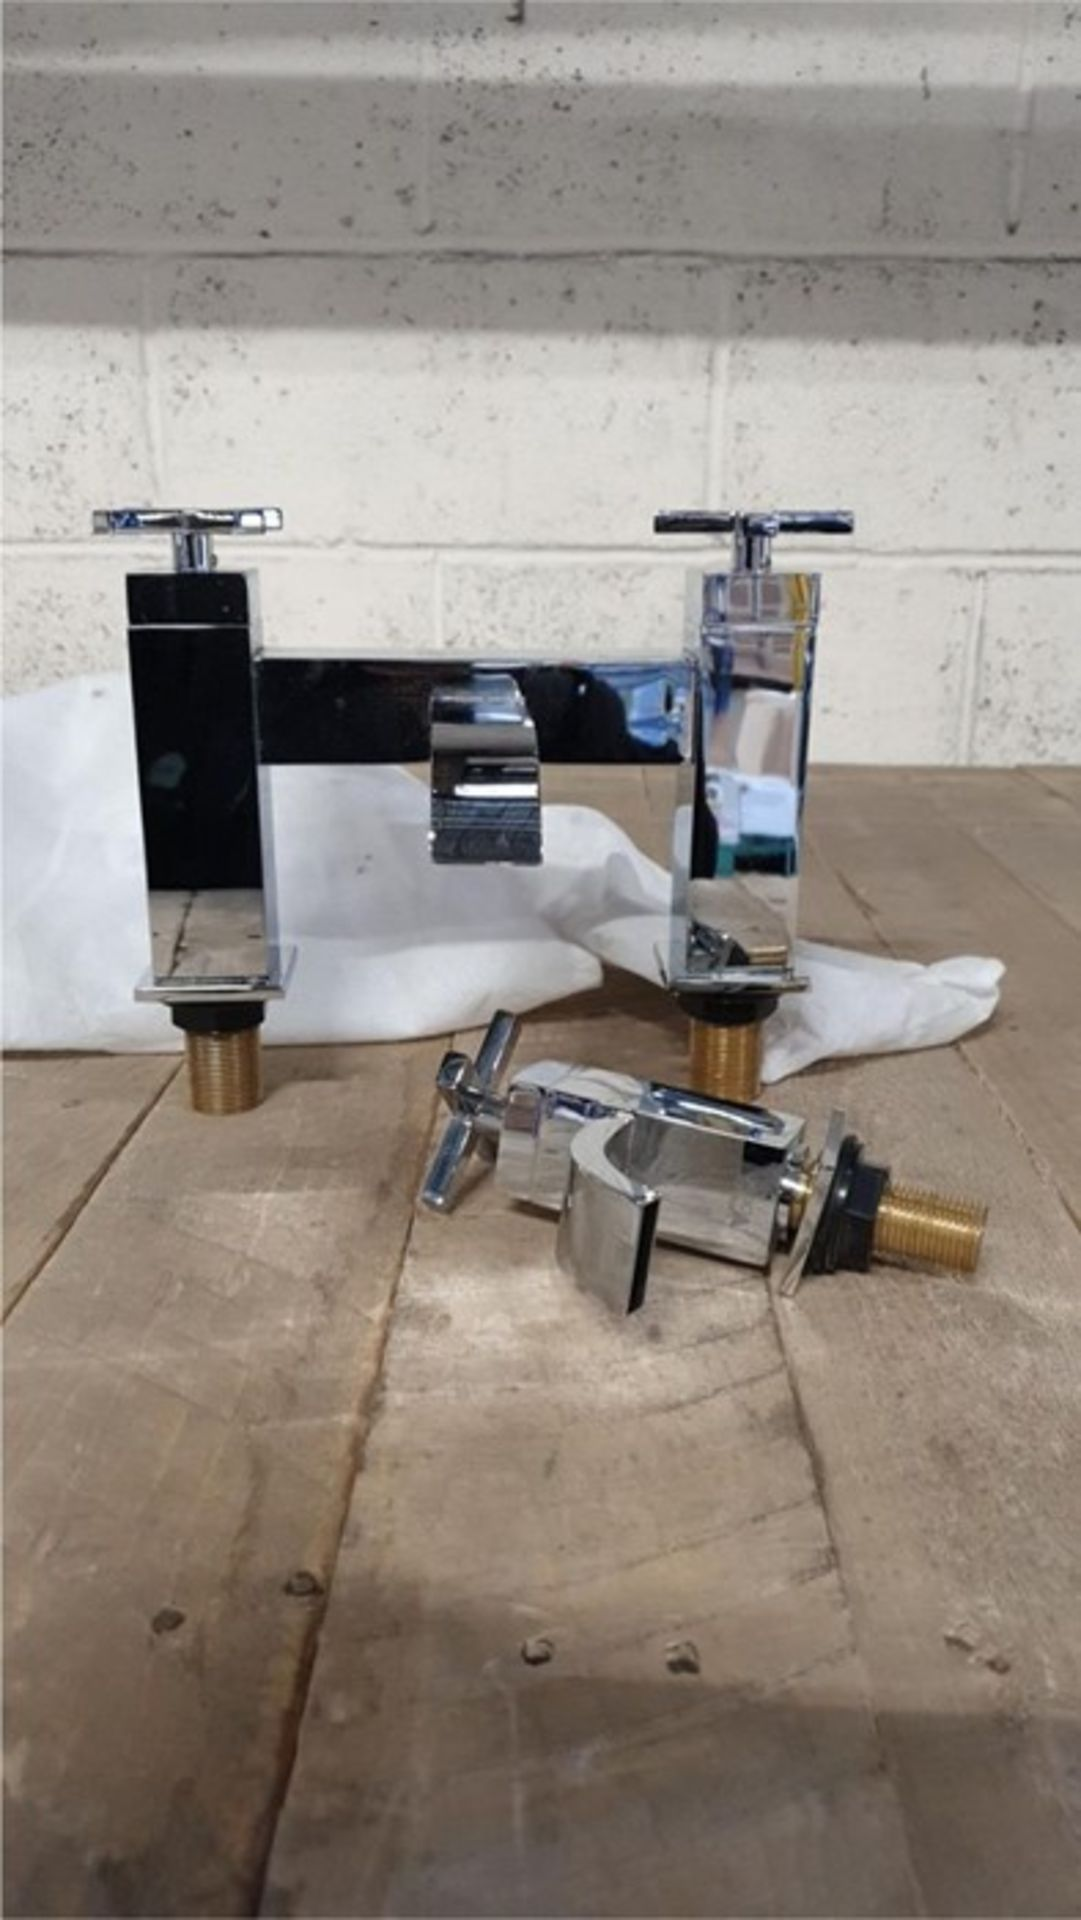 Lot 49 - 1 BAGGED SET OF VOGUE CHROME MODERN TAPS, 1 SINGLE HOT TAP , 1 DOUBLE HOT AND COLD TAP (VIEWING